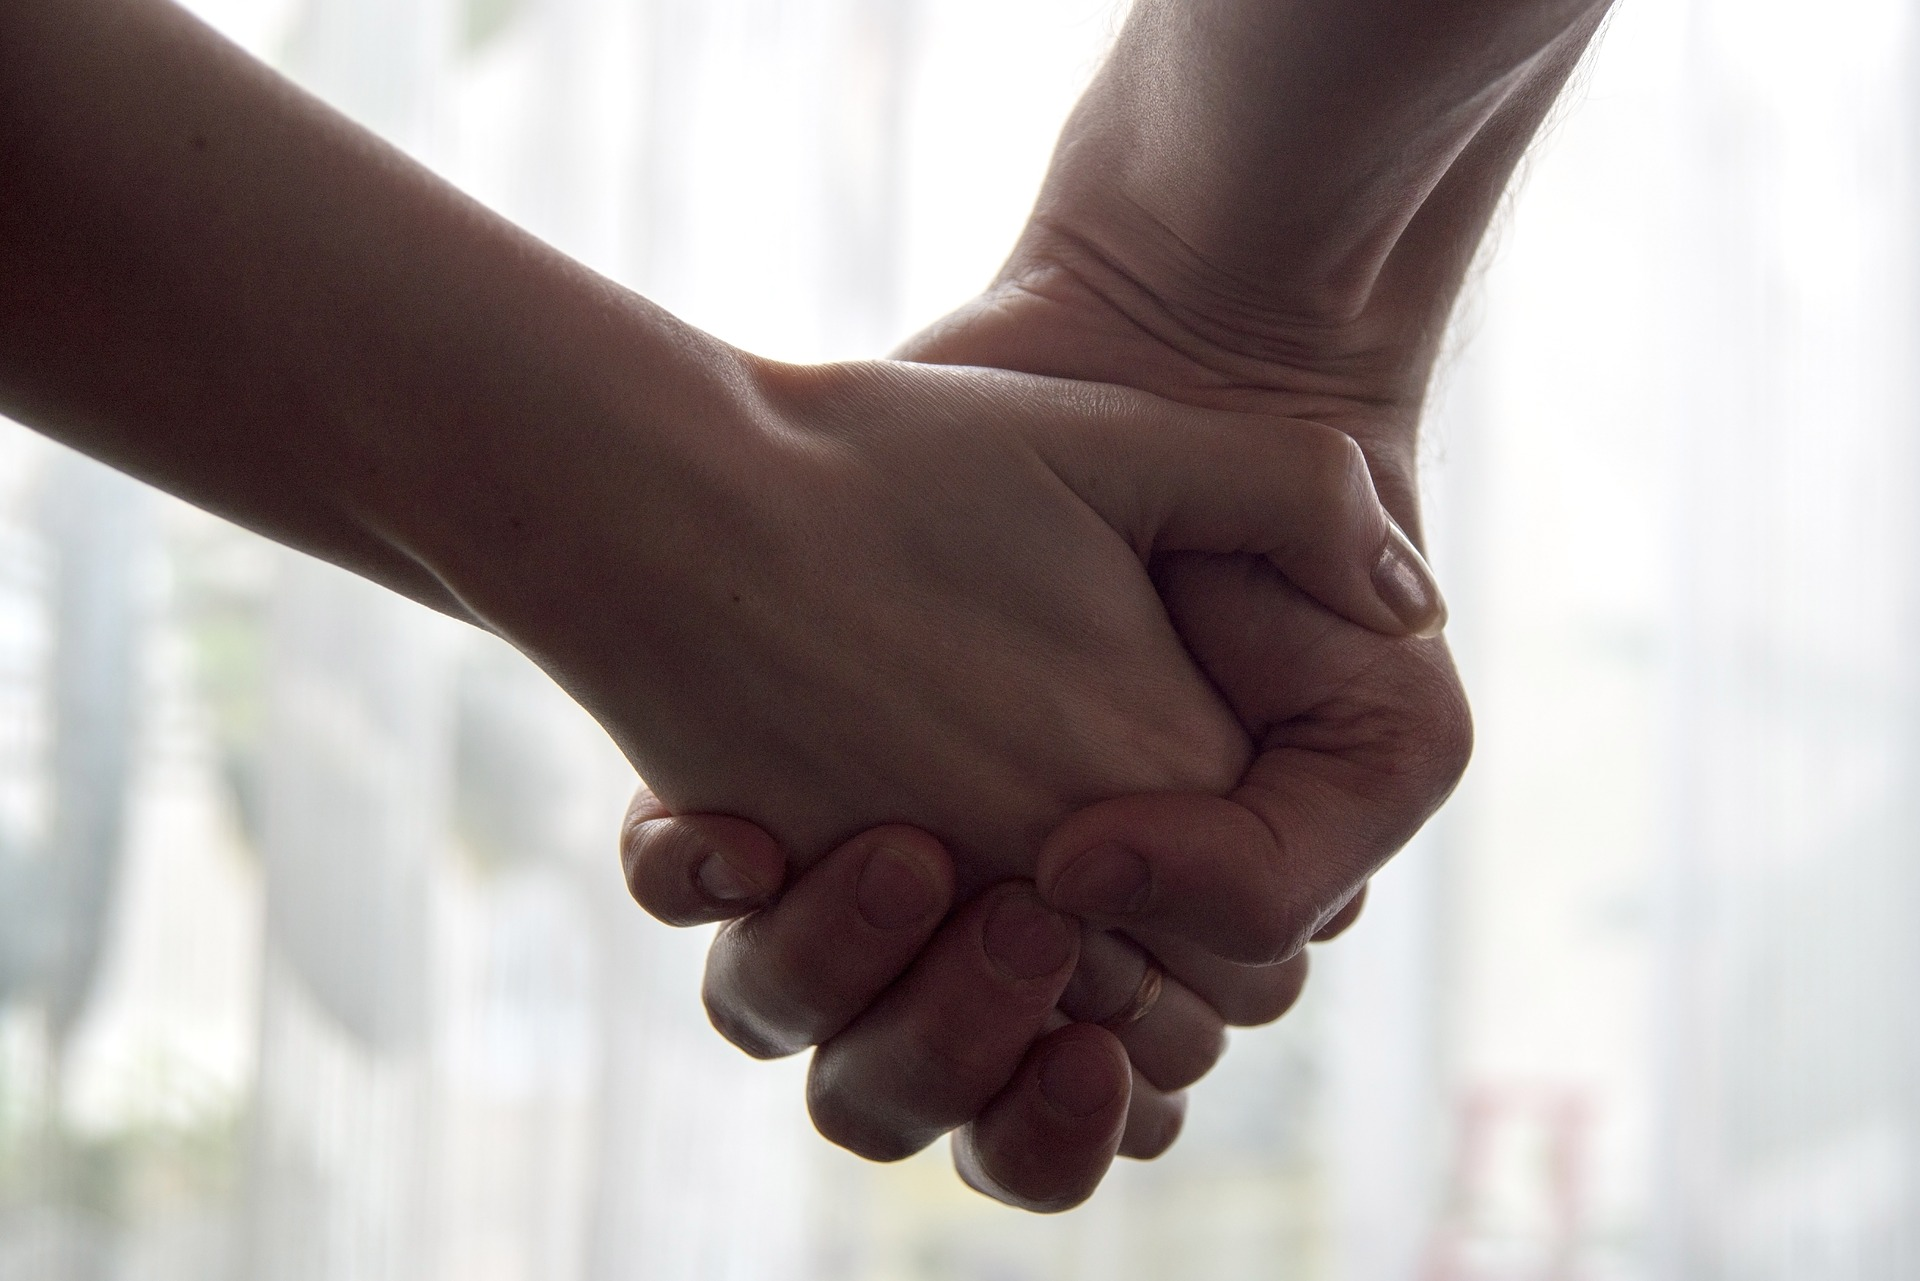 Mental Health Hand Holding Support